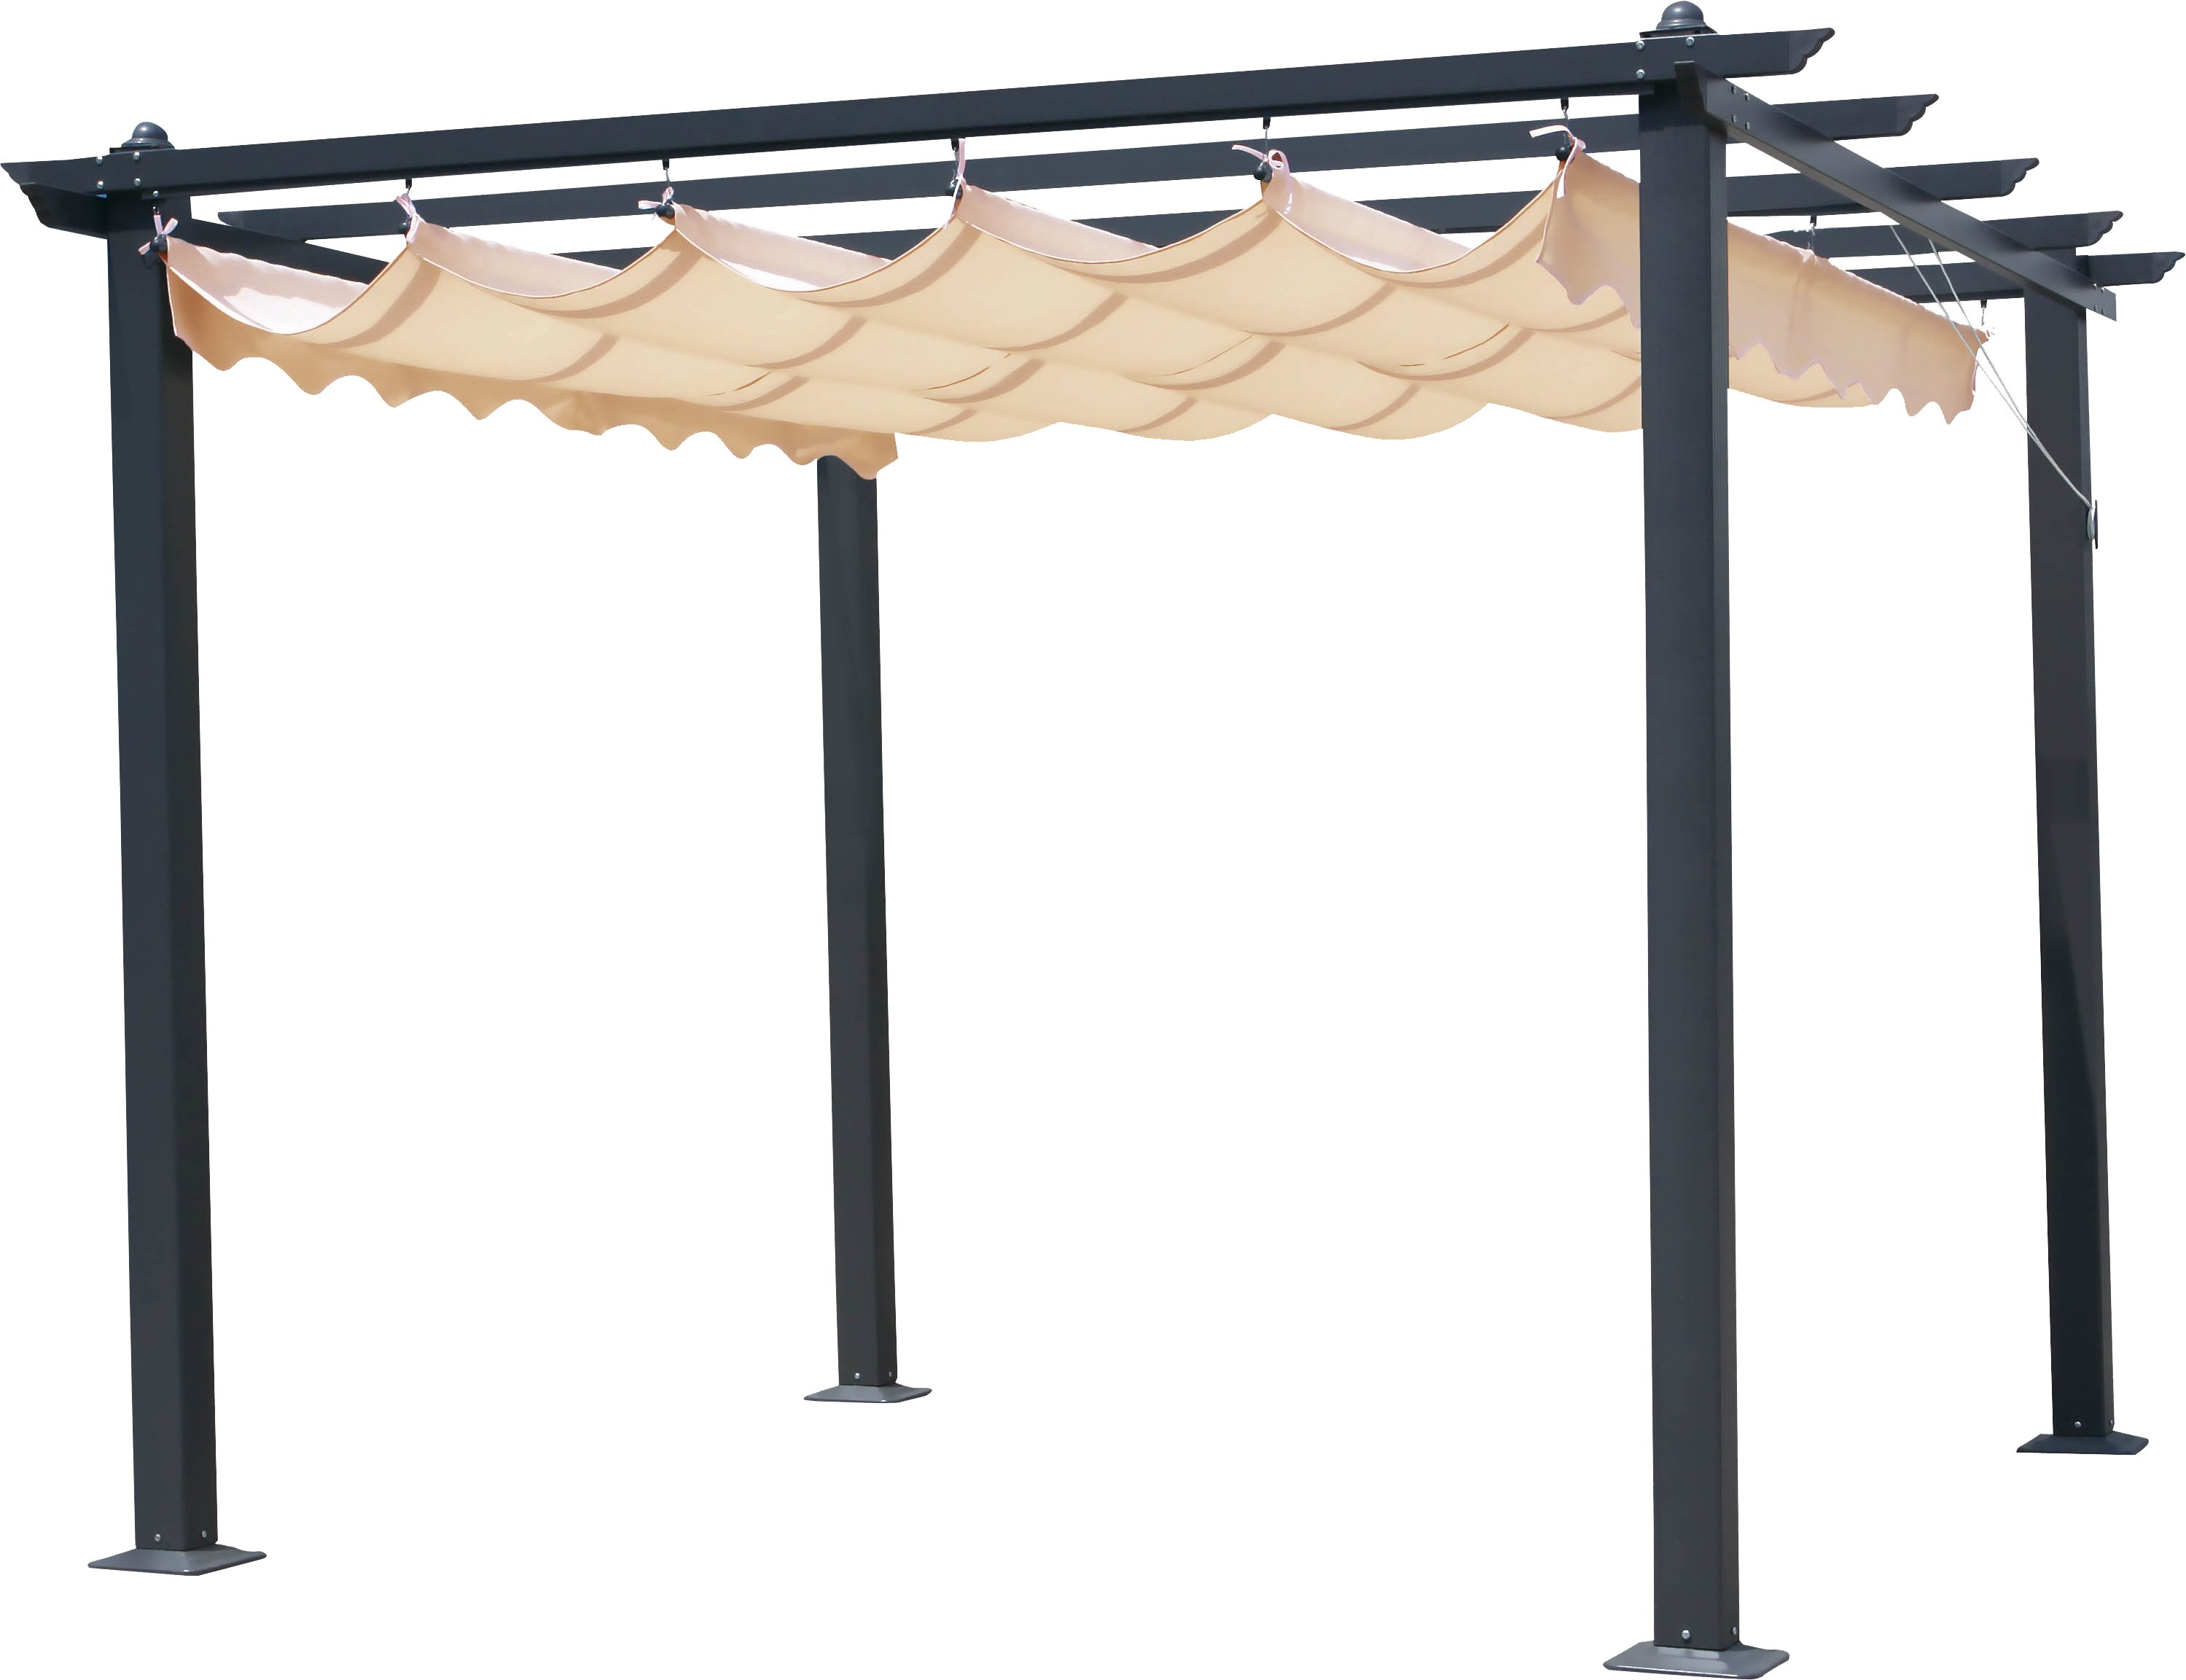 prix pergola alu pergola alu classique toiture en polycarbonate 16 mm standard pergola. Black Bedroom Furniture Sets. Home Design Ideas